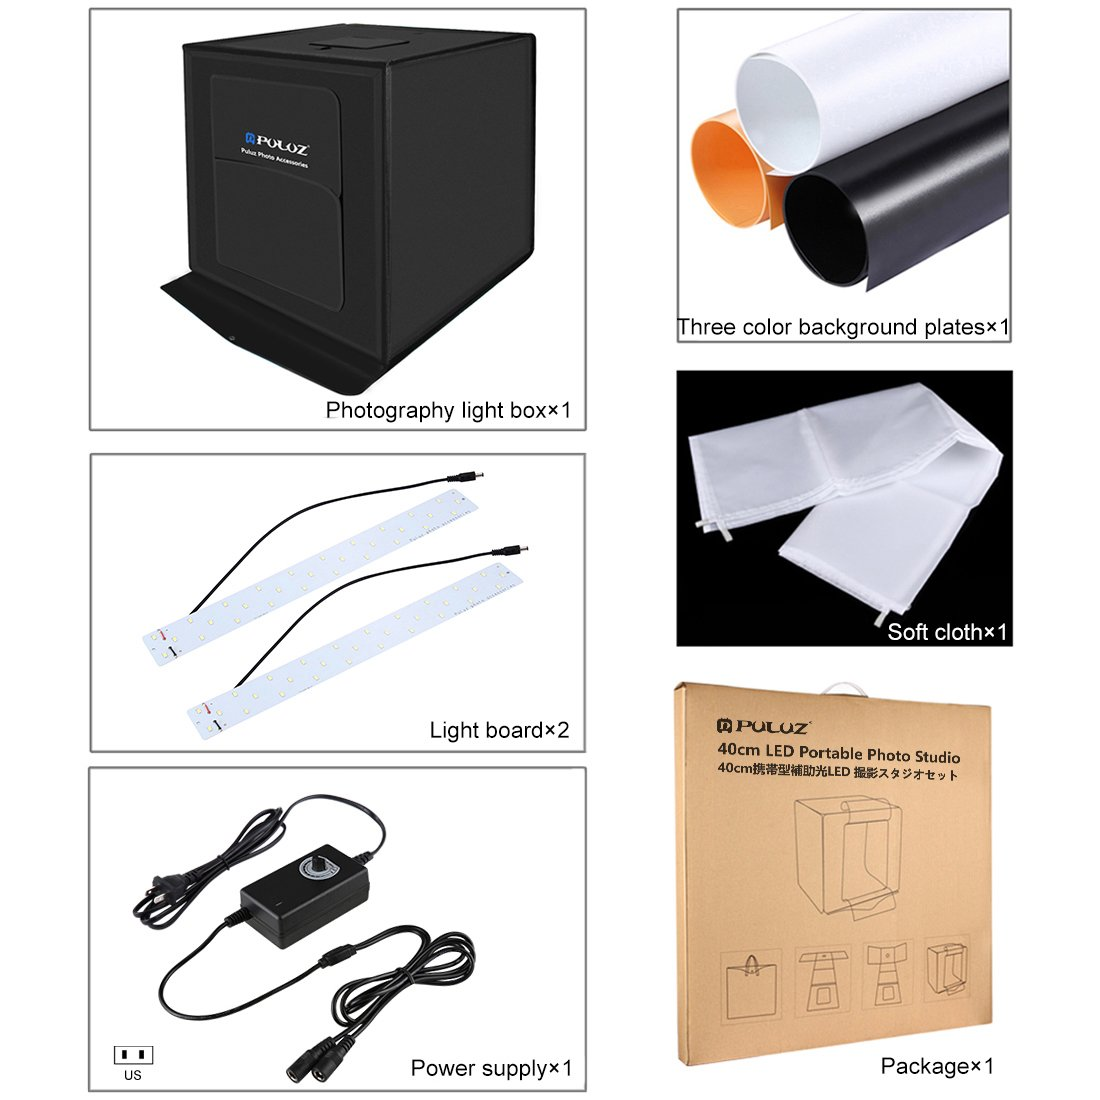 Portable Photo Studio with 3 Backdrops (Black/White/Orange), 16''x16'' Light Box for Jewelry,Toys,Baking,Small Items Photography, Shooting Tent Box Kit Brightness Adjustable by TSLEEN (Image #4)